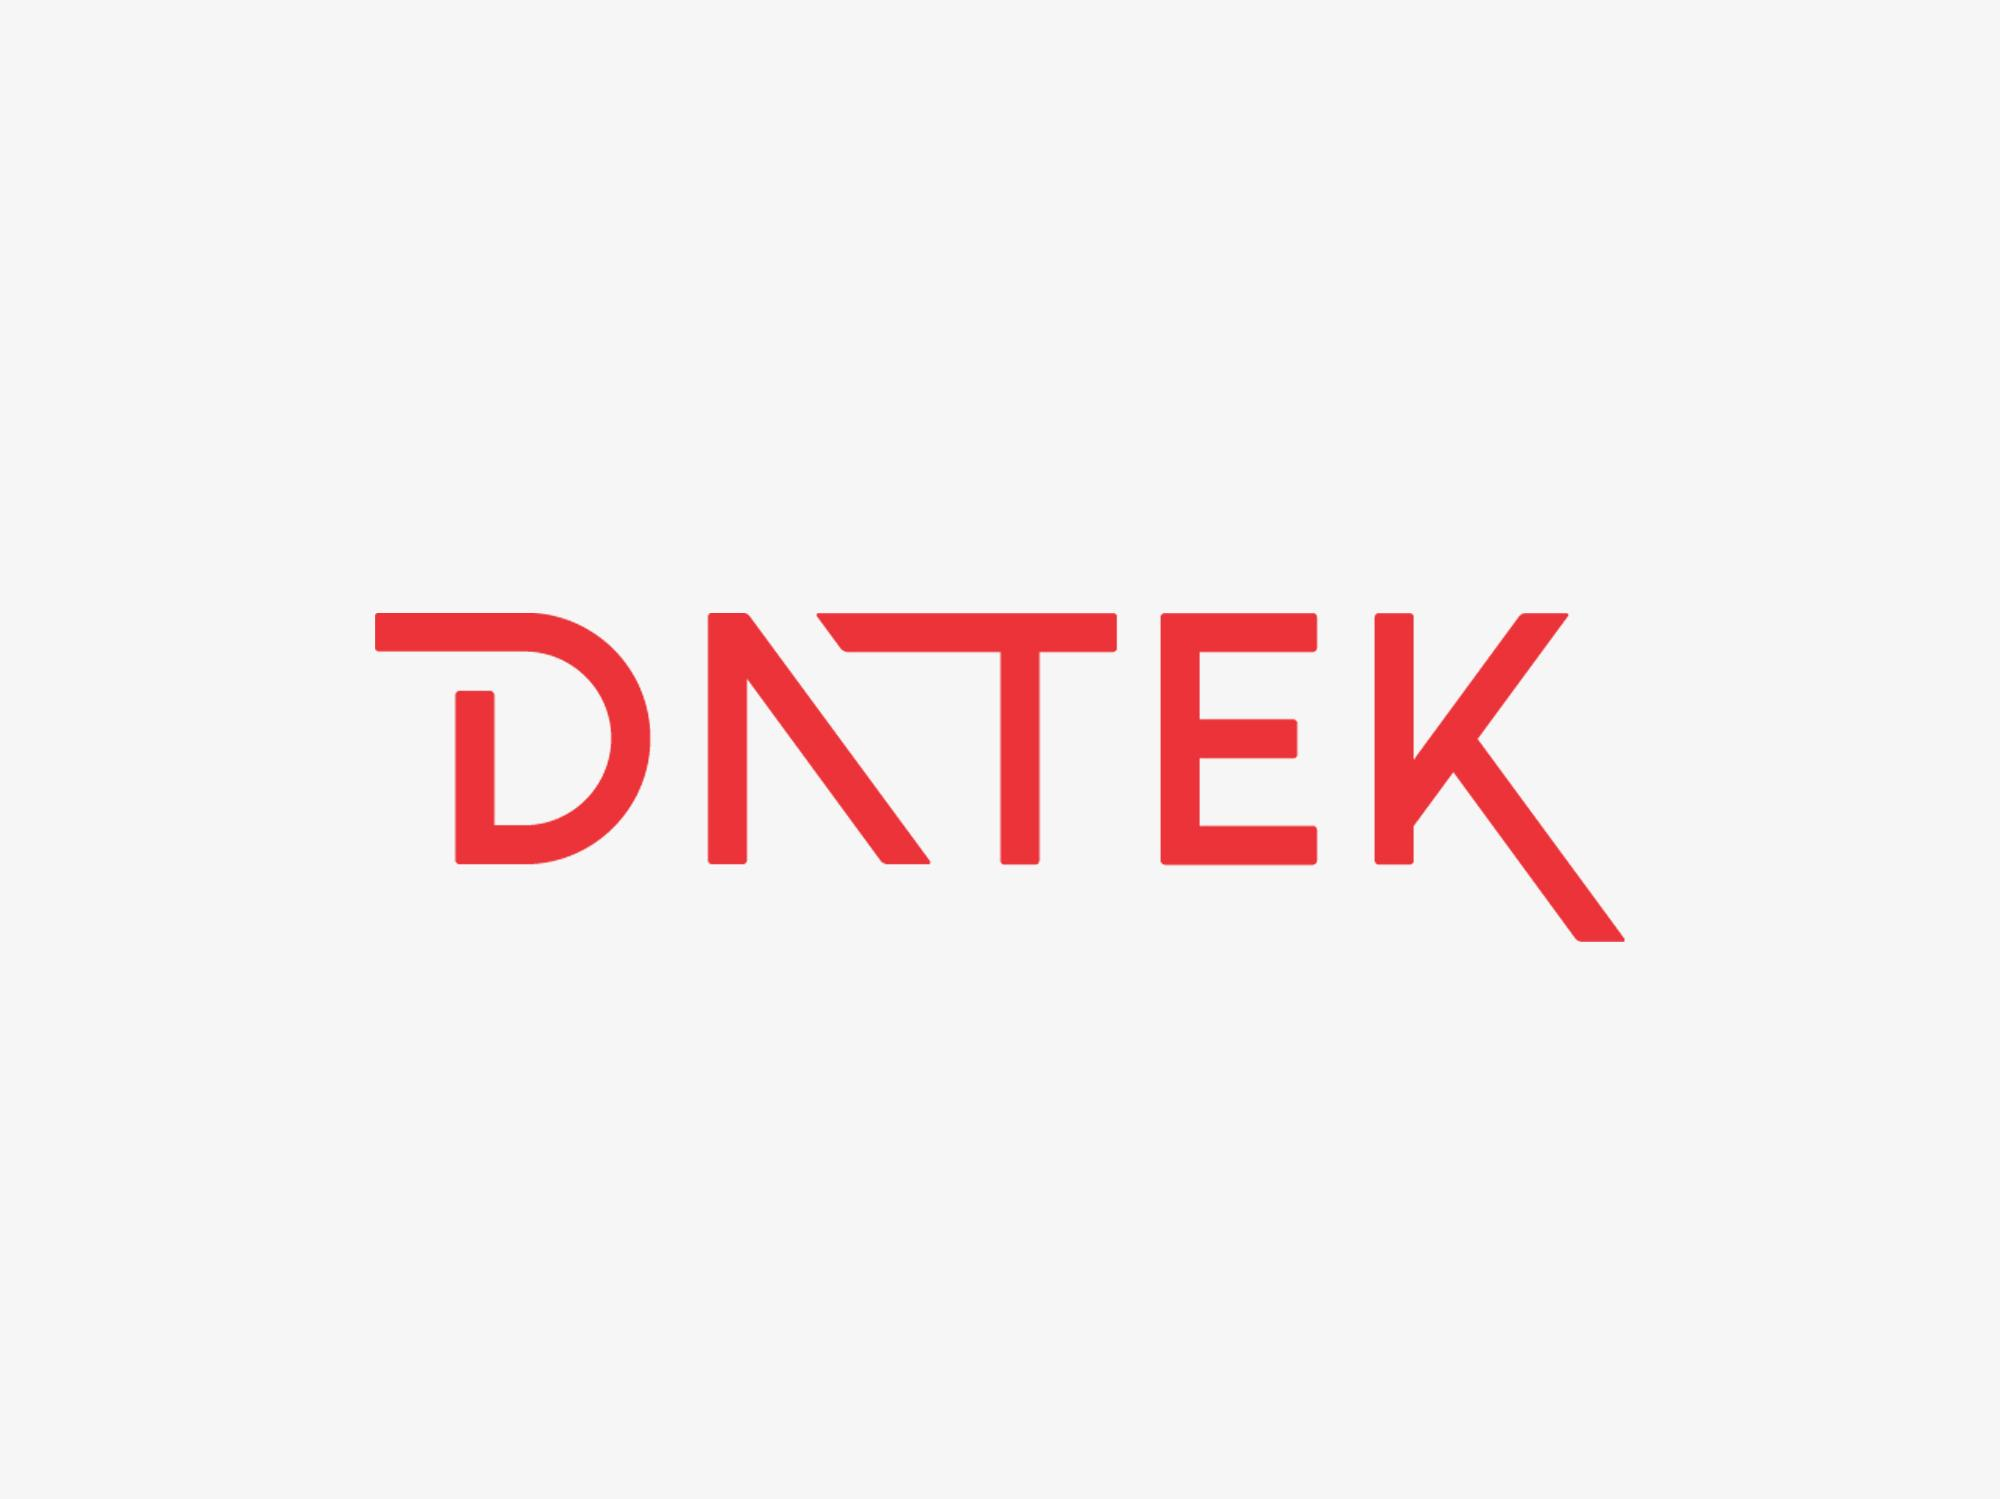 Datek sin logo